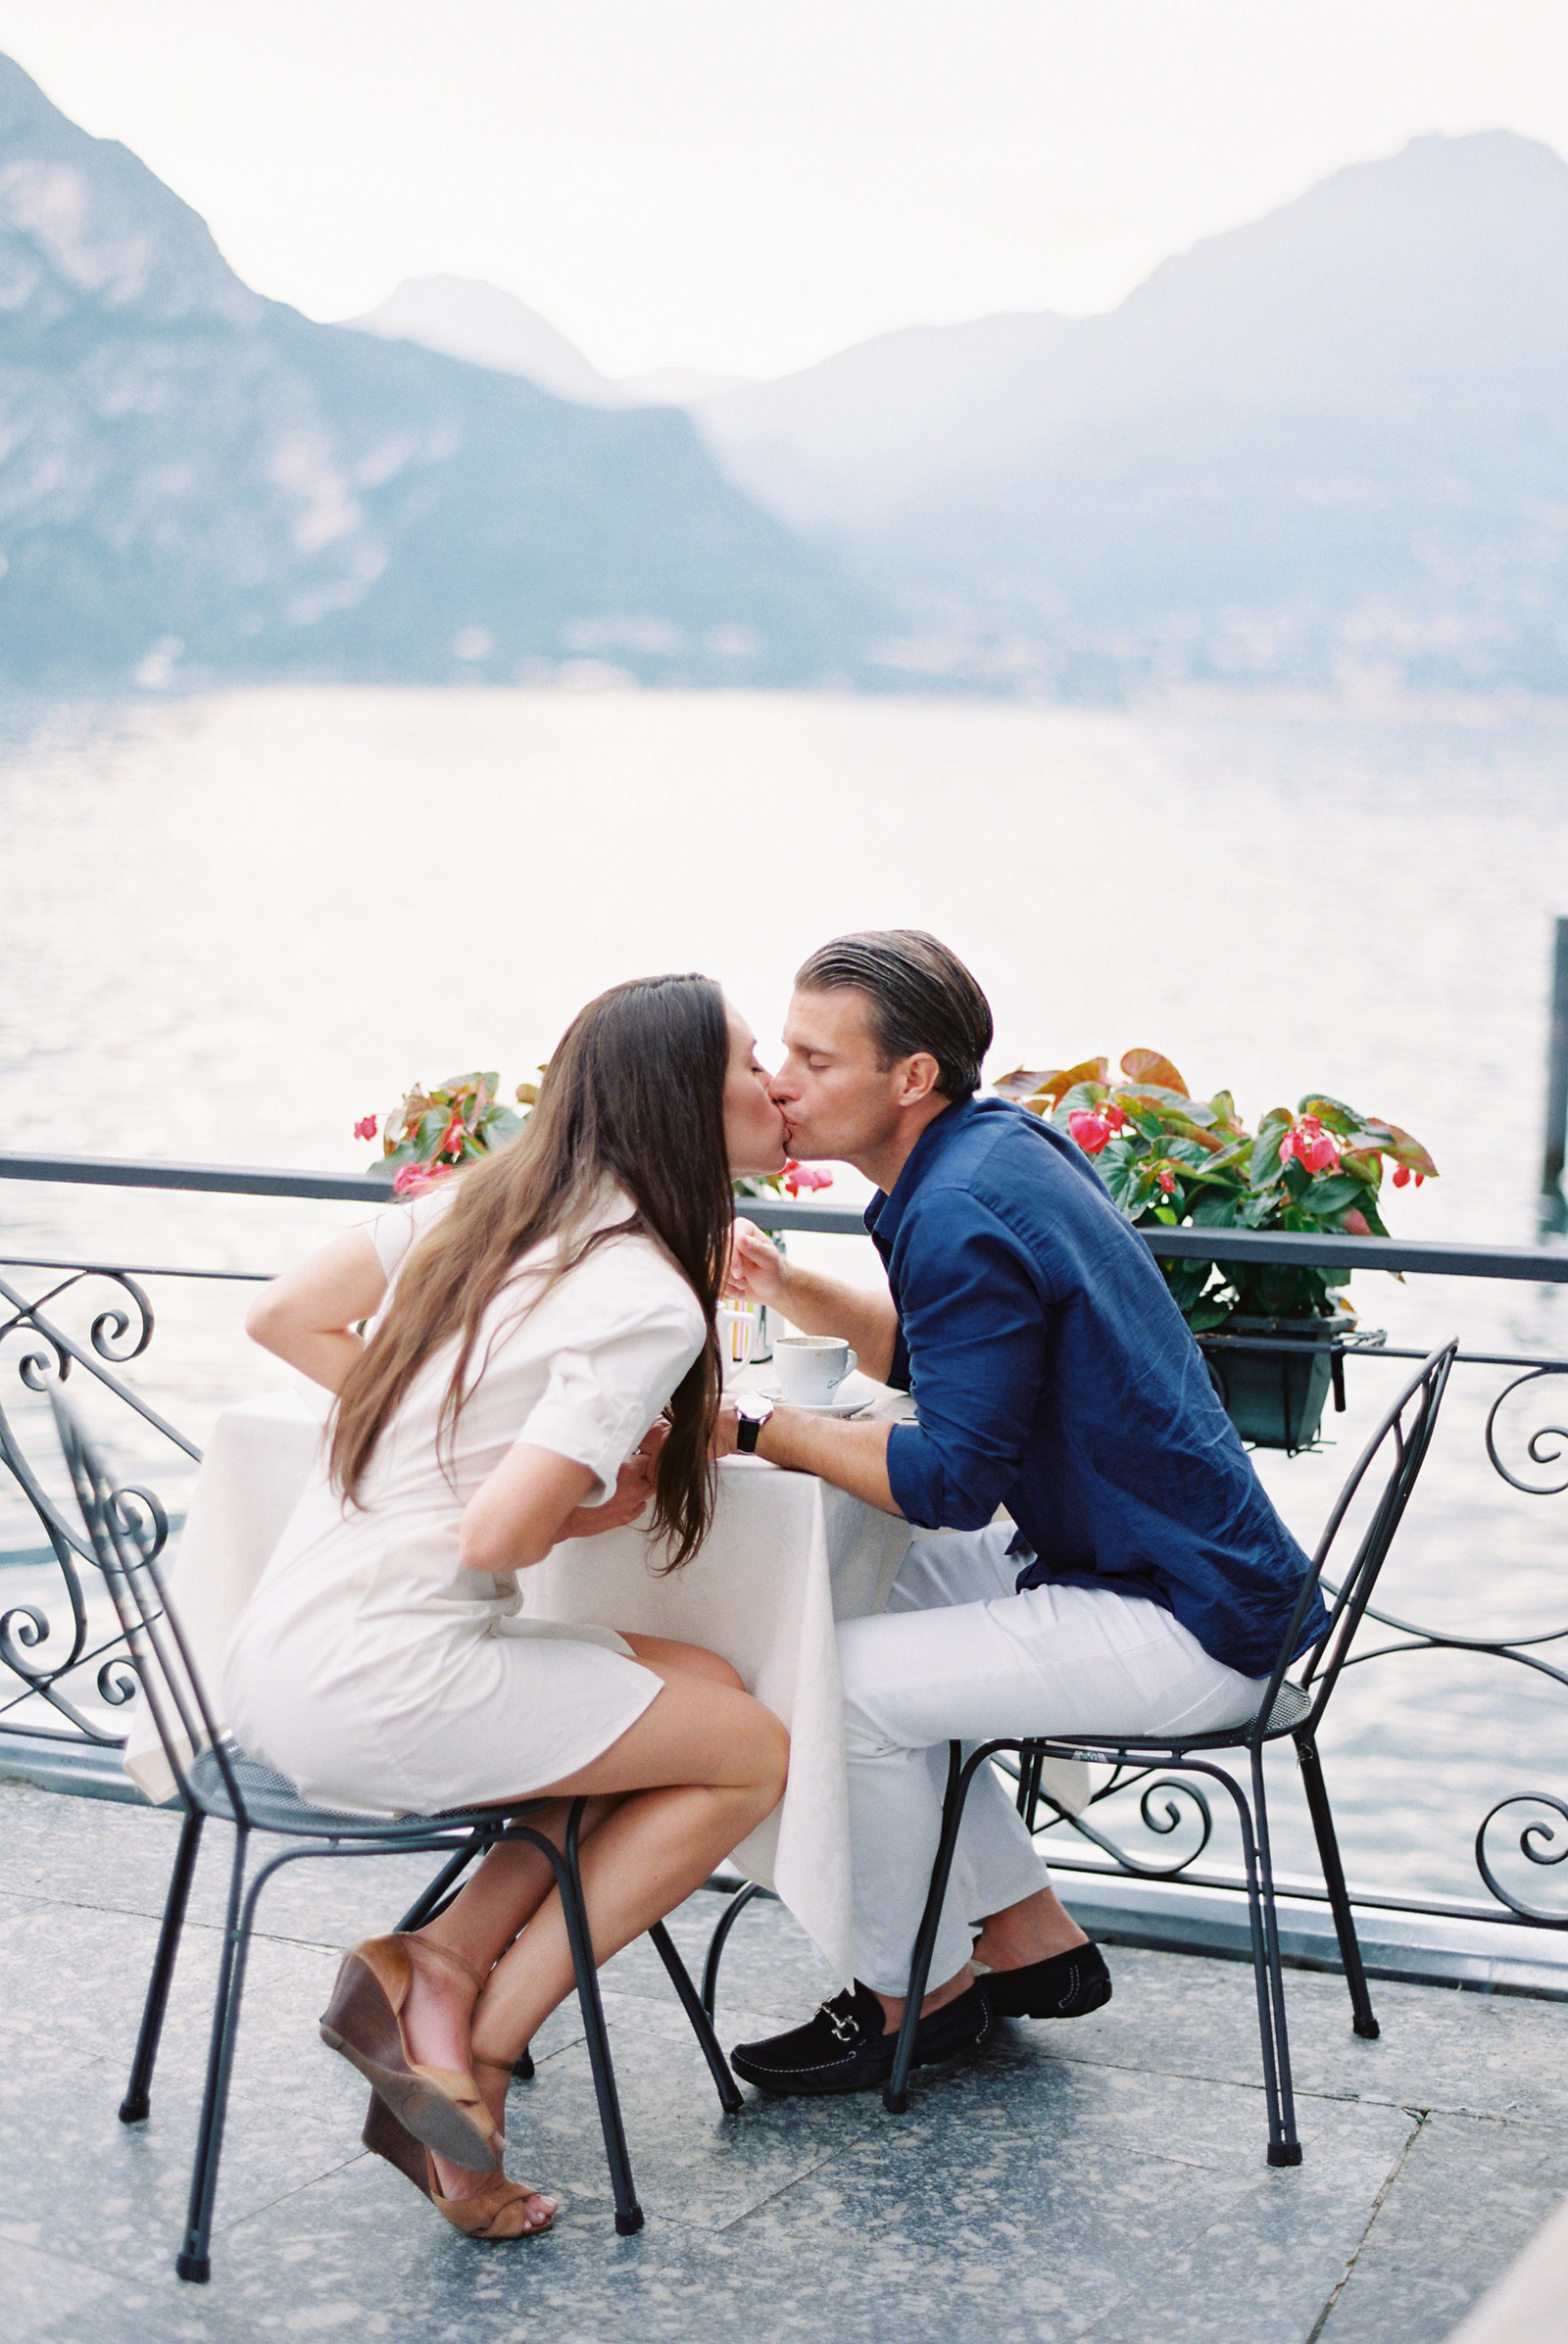 lake-como-italy-destination-wedding-honeymoon-session-melanie-gabrielle-photogrpahy-056